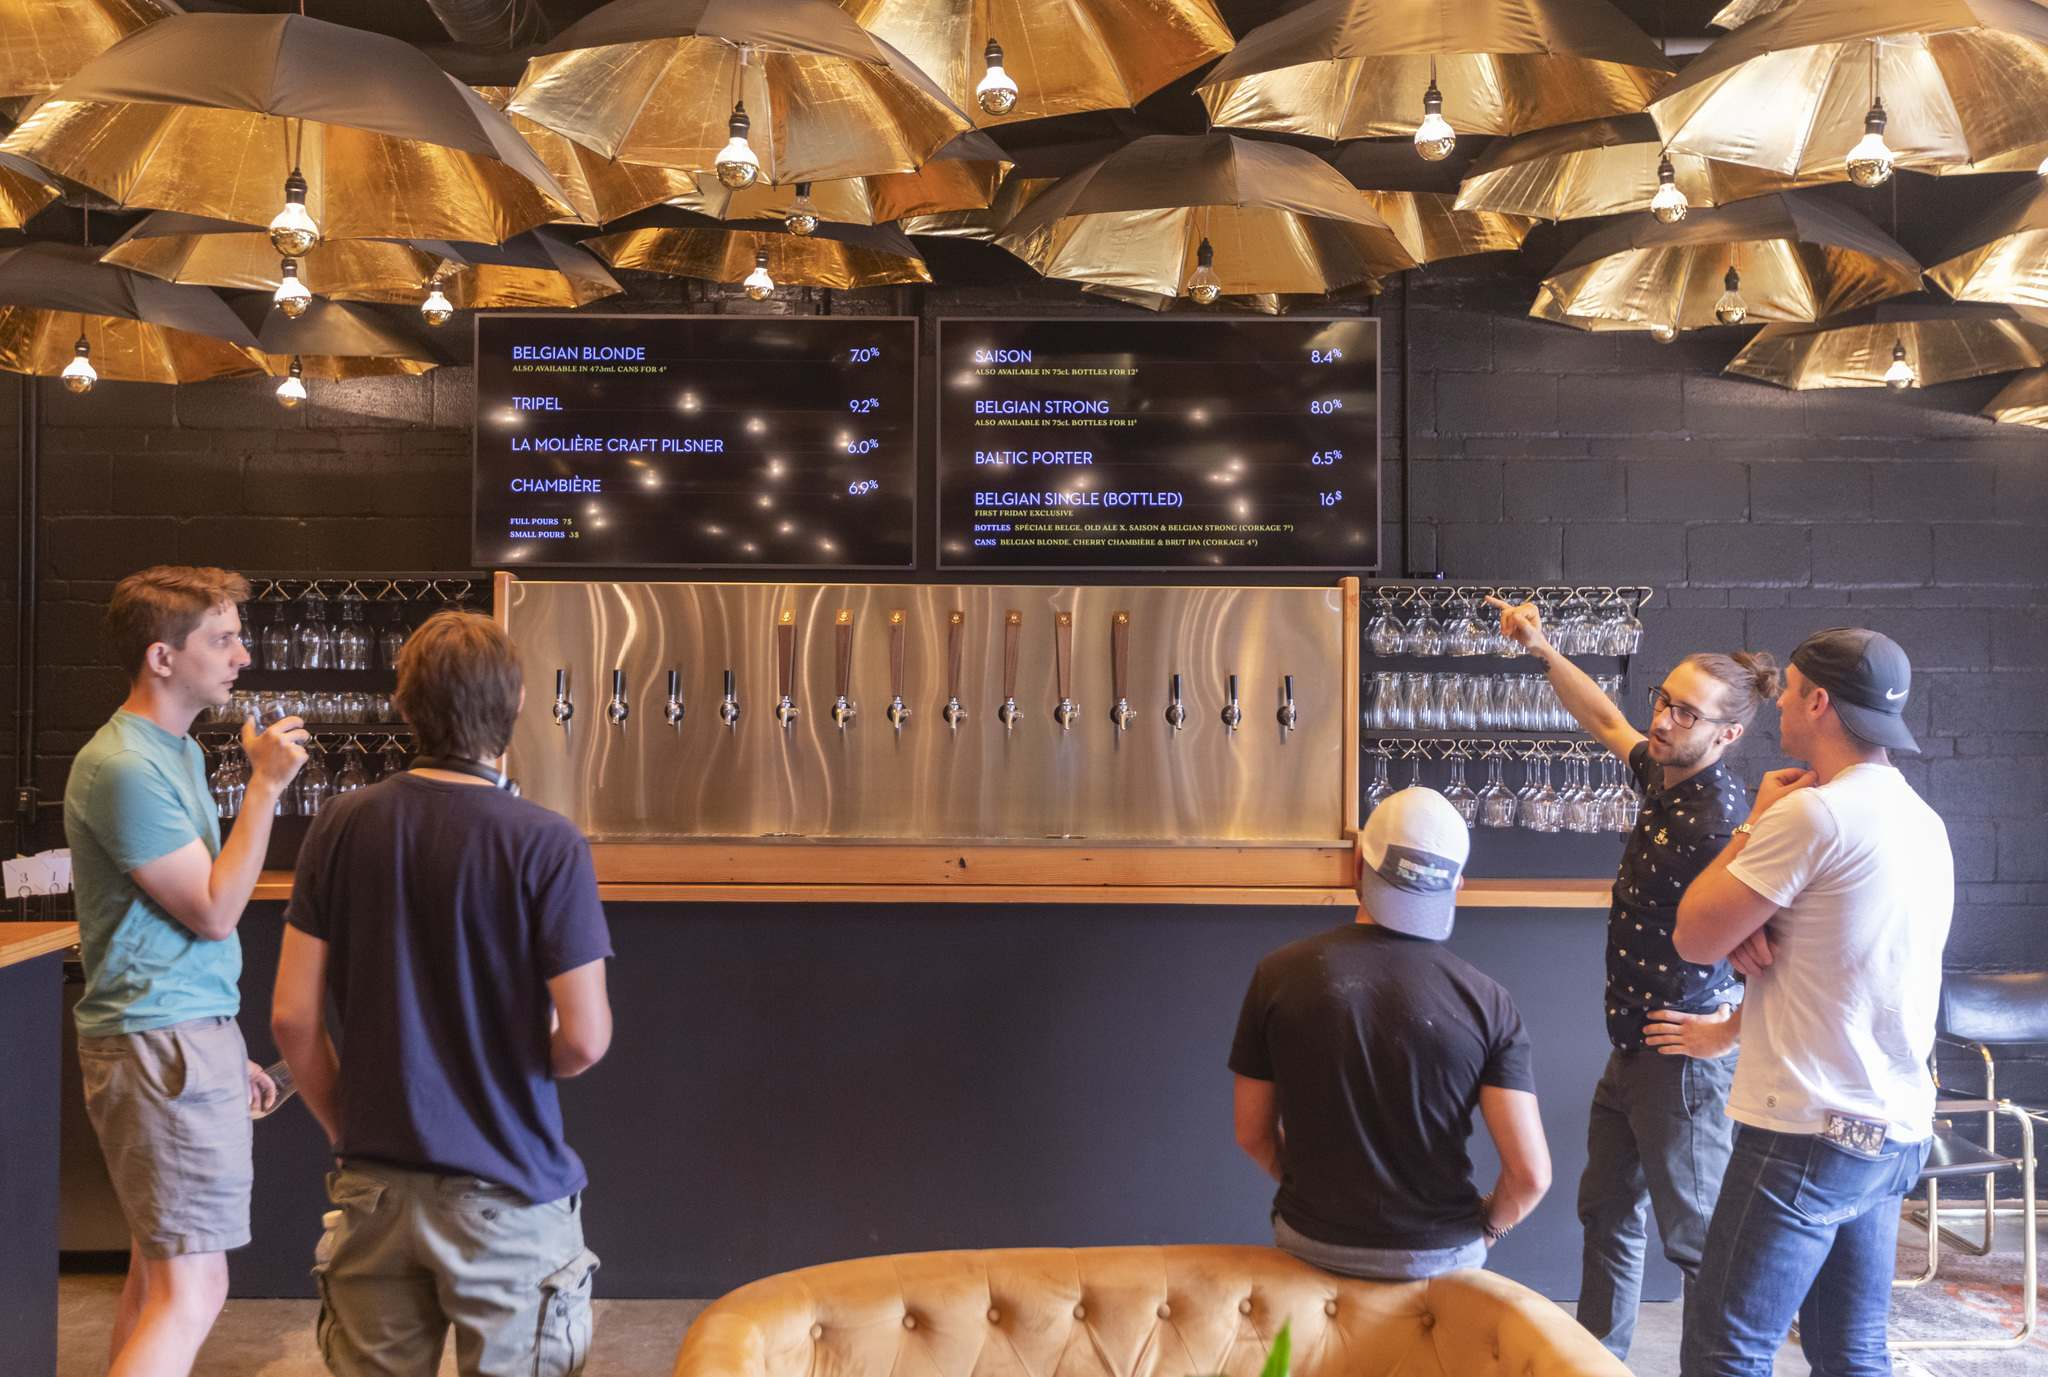 Bartender Dylan Picton explains the beer offerings to patrons in the taproom. (Sasha Sefter / Winnipeg Free Press)